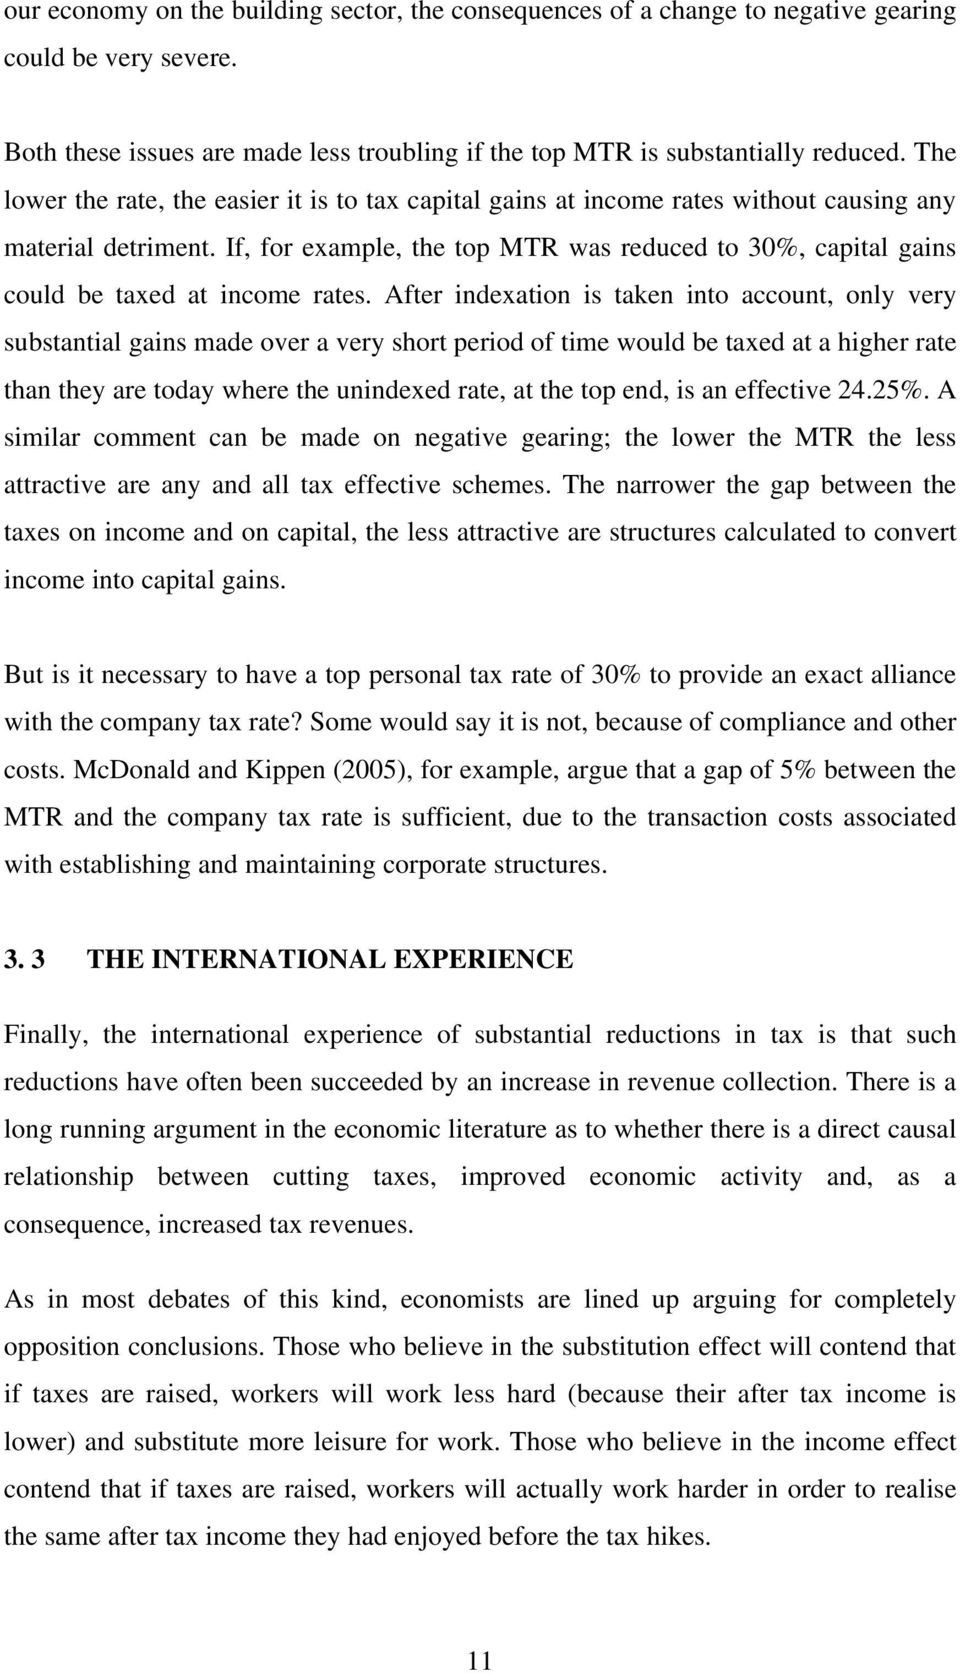 If, for example, the top MTR was reduced to 30%, capital gains could be taxed at income rates.